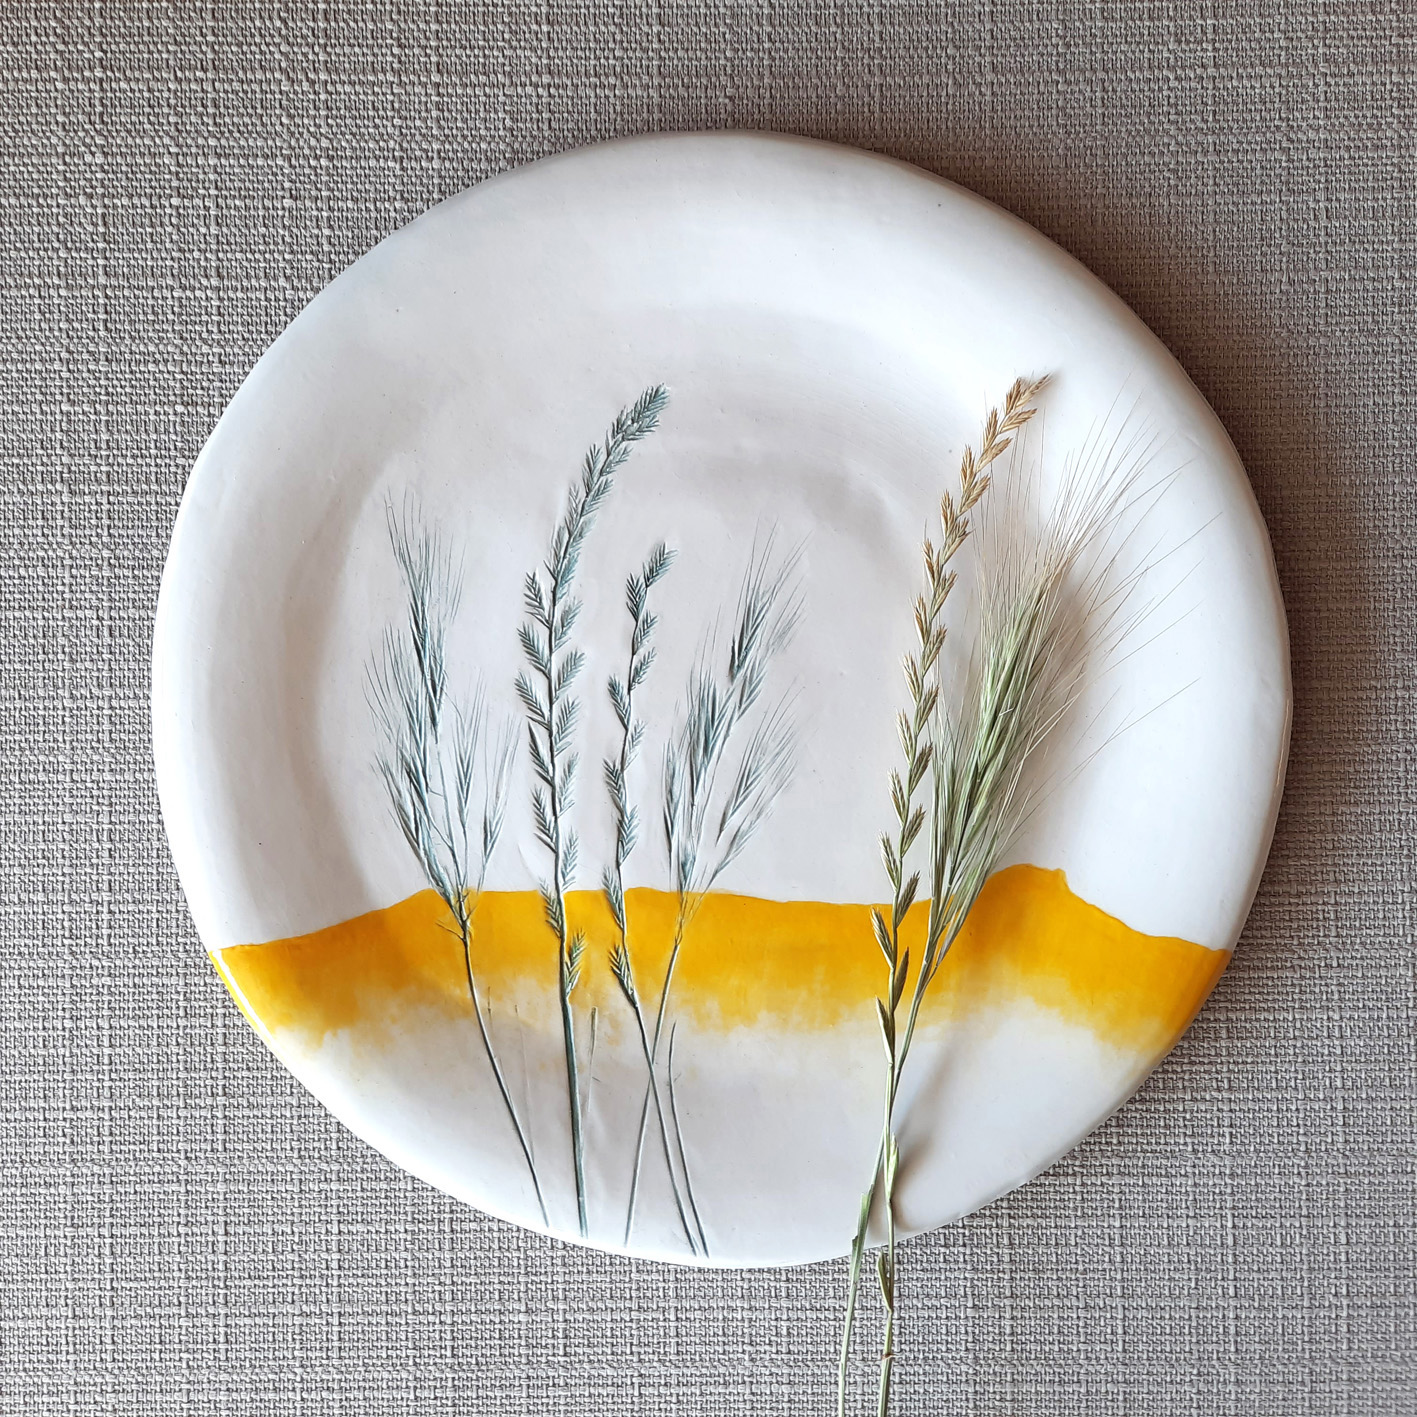 White plate with grass